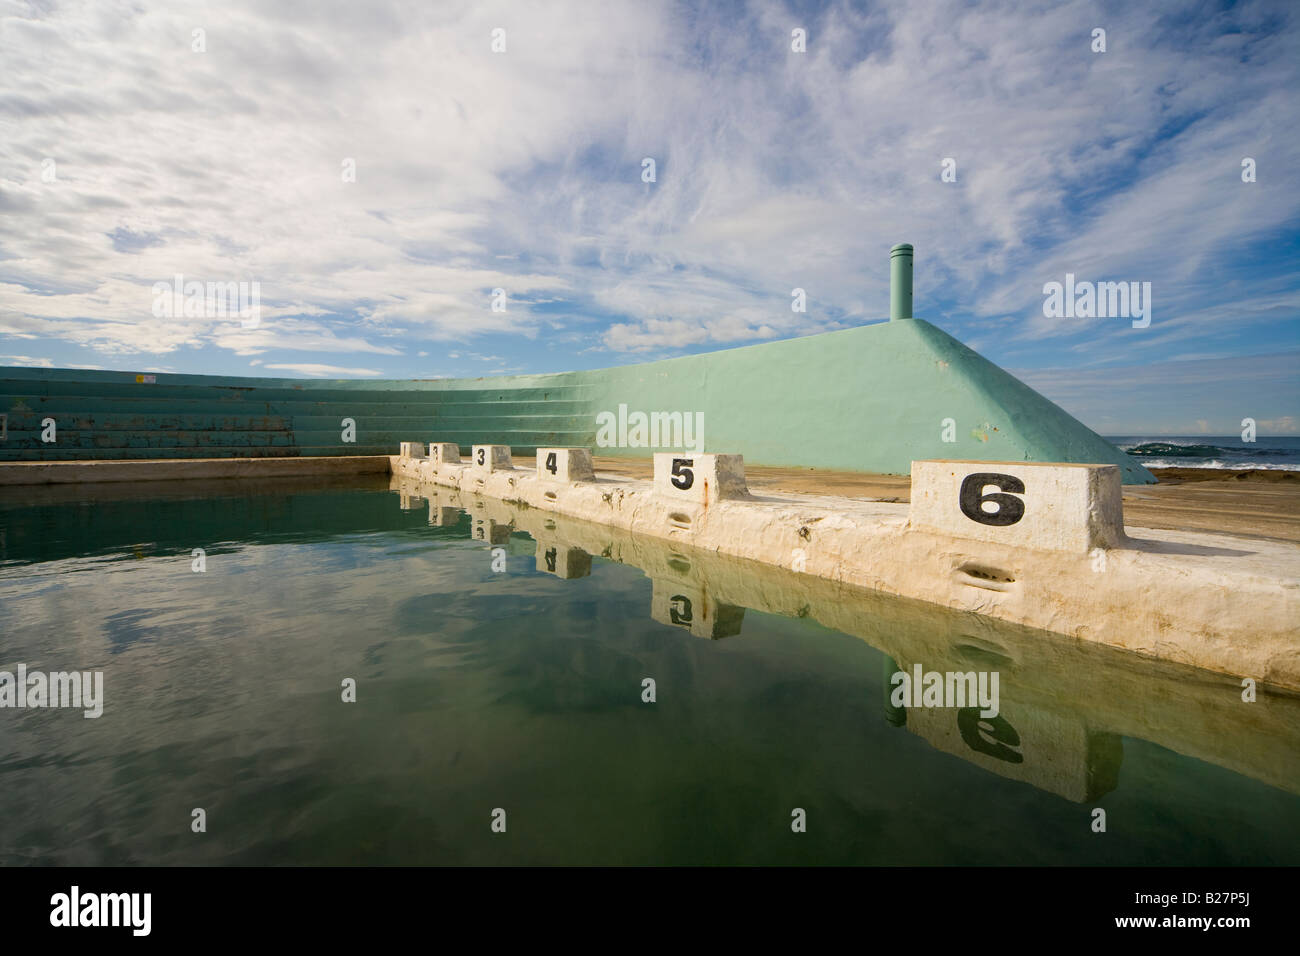 https://c7.alamy.com/comp/B27P5J/art-deco-style-ocean-baths-in-newcastle-nsw-australia-characteristic-B27P5J.jpg